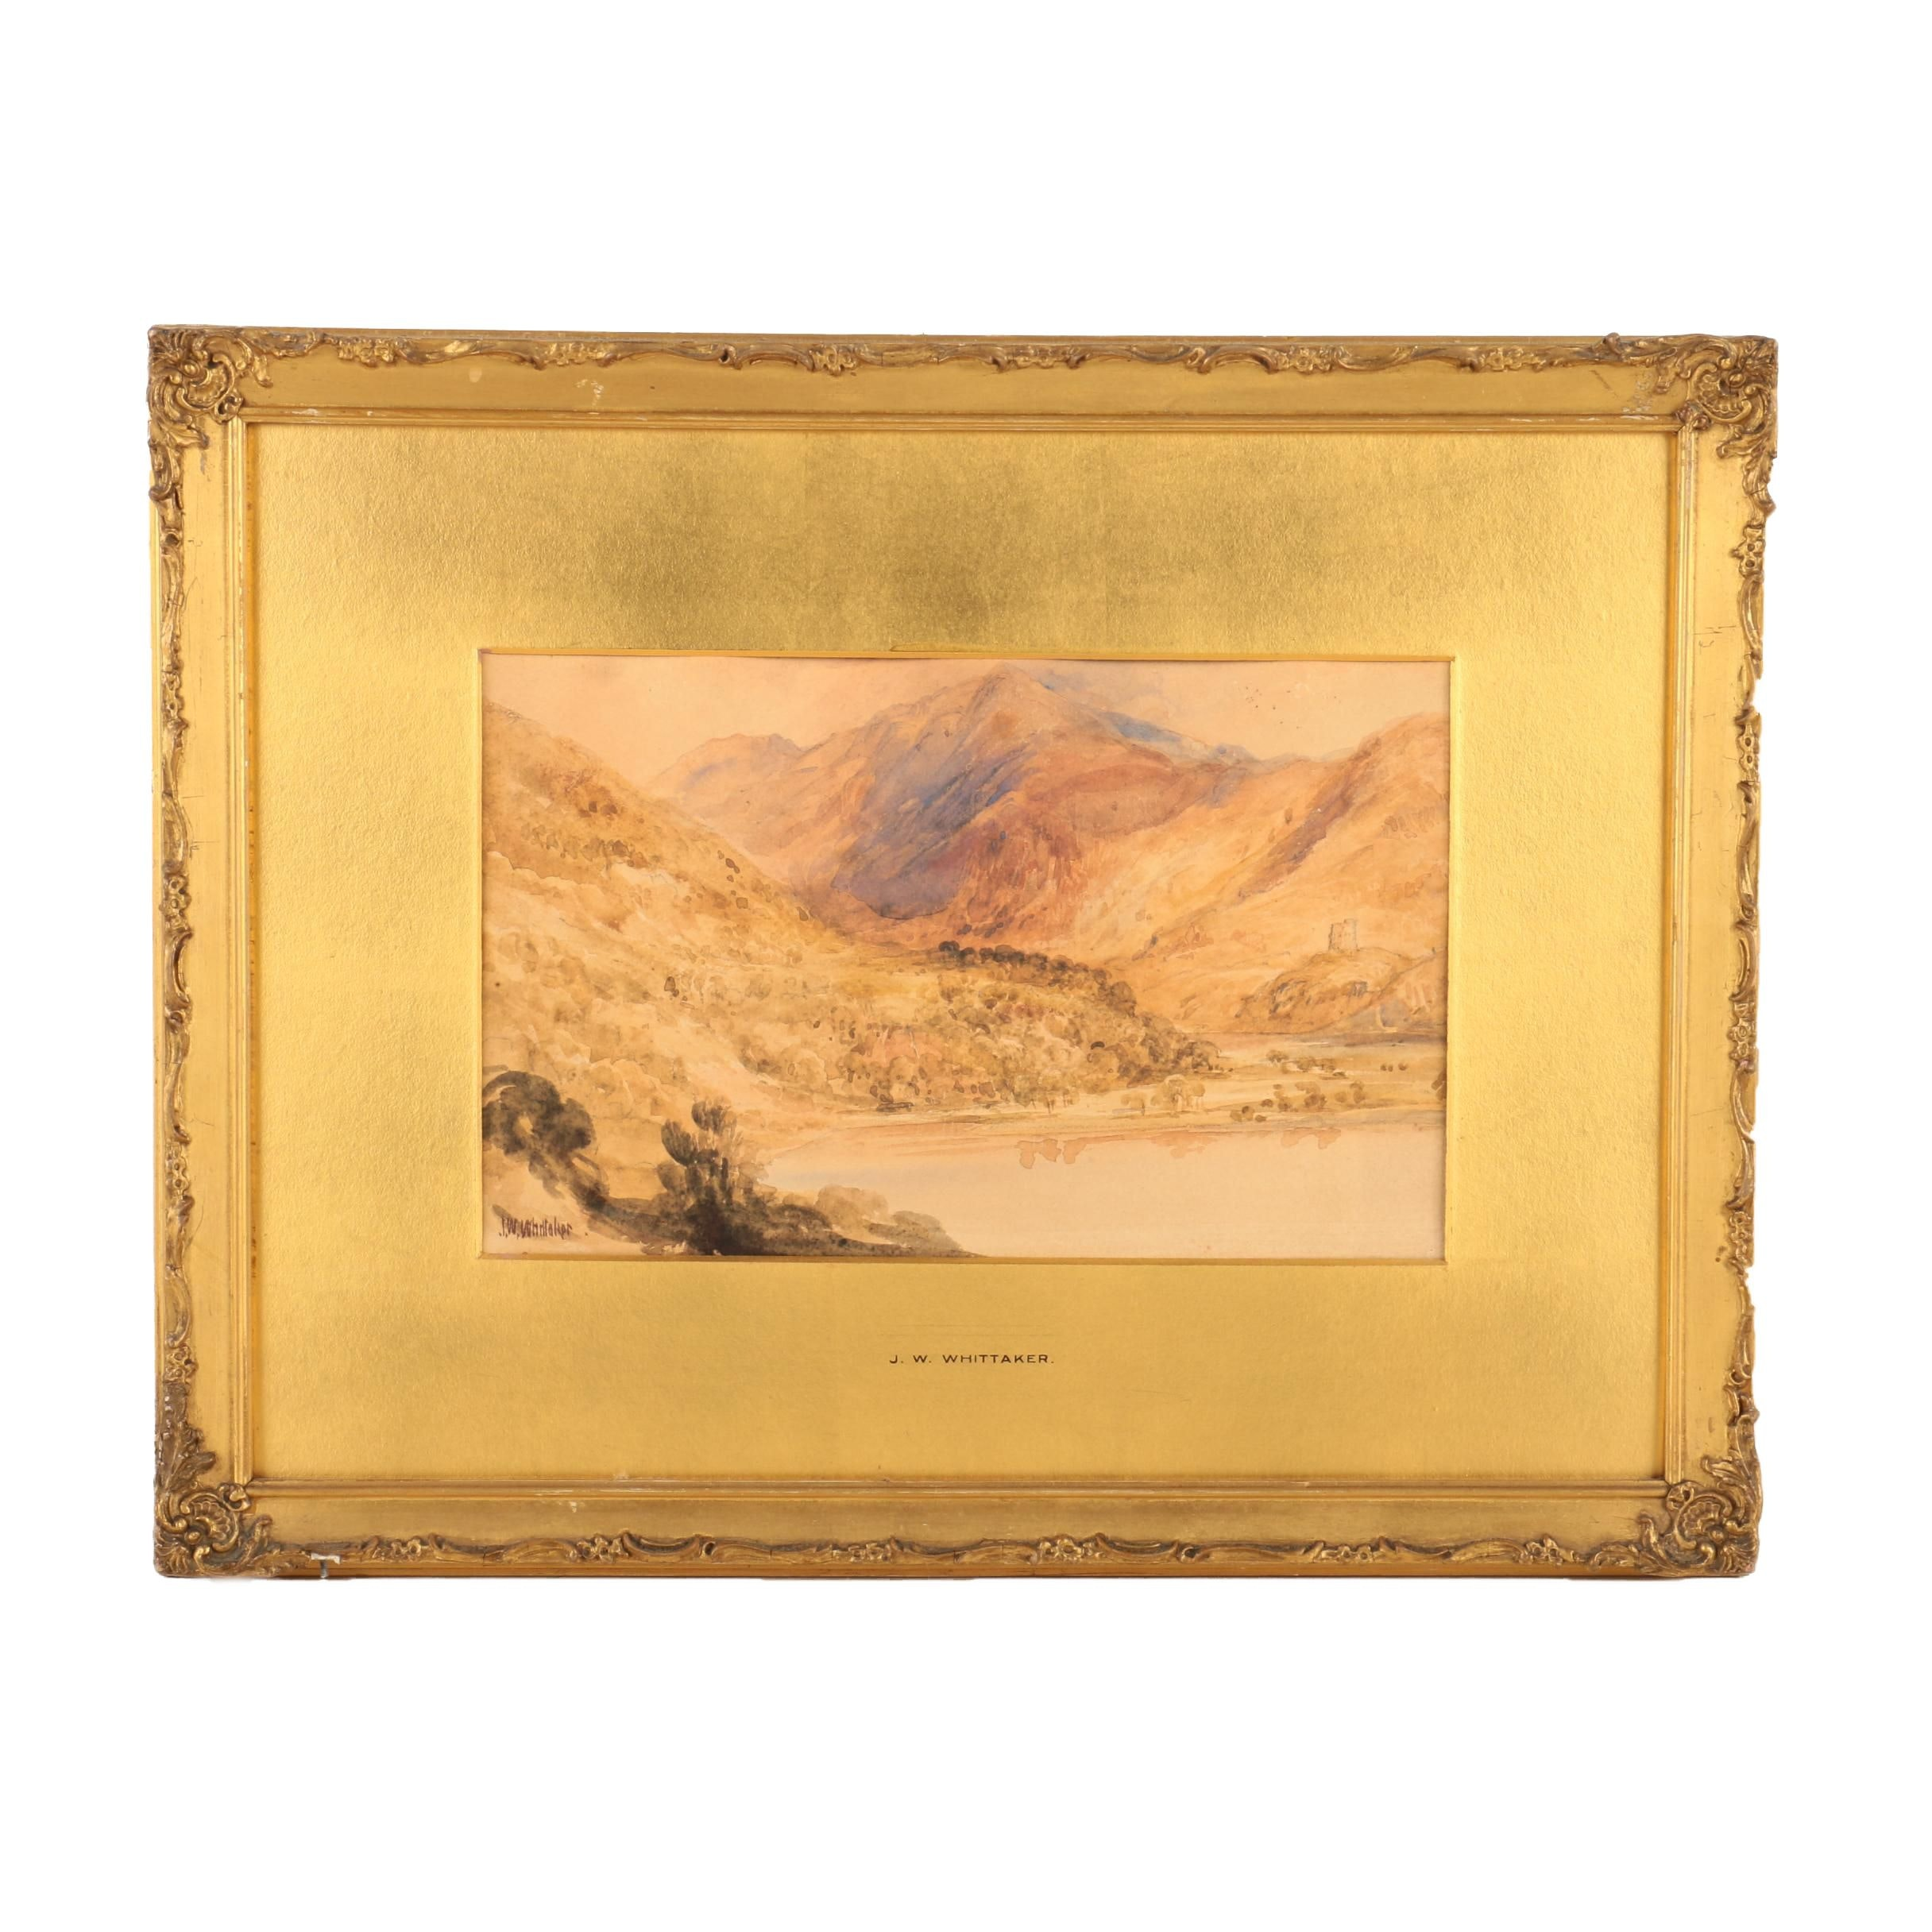 James William Whittaker 19th-Century Watercolor on Paper of a Valley Vista